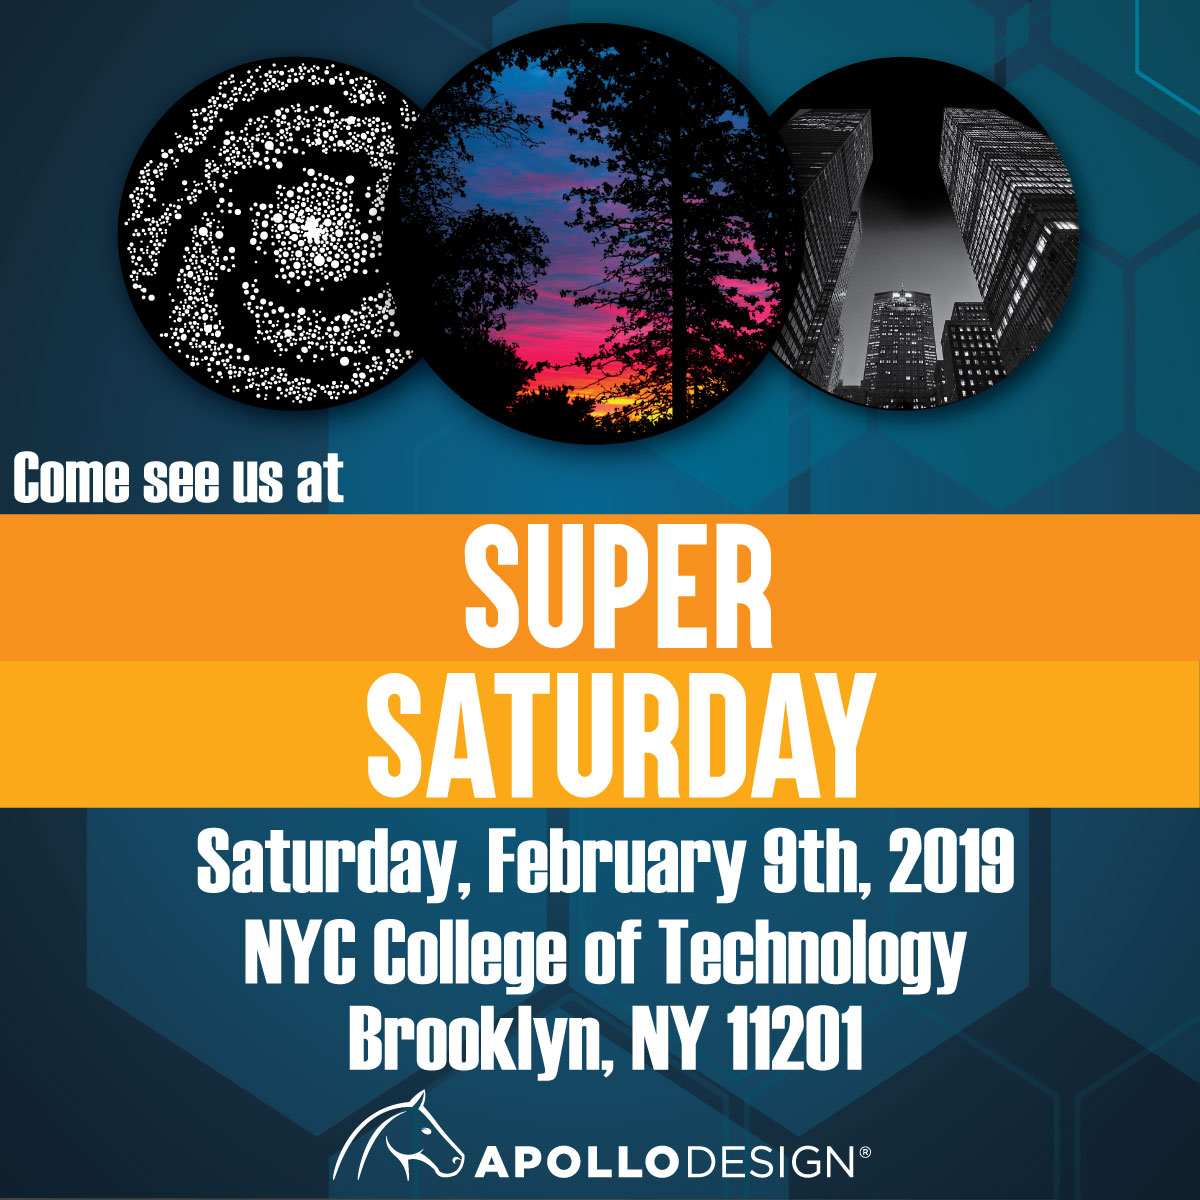 Come See Us At SUPER SATURDAY February 9th, 2019 NYC College of Technology Brooklyn, NY 11201